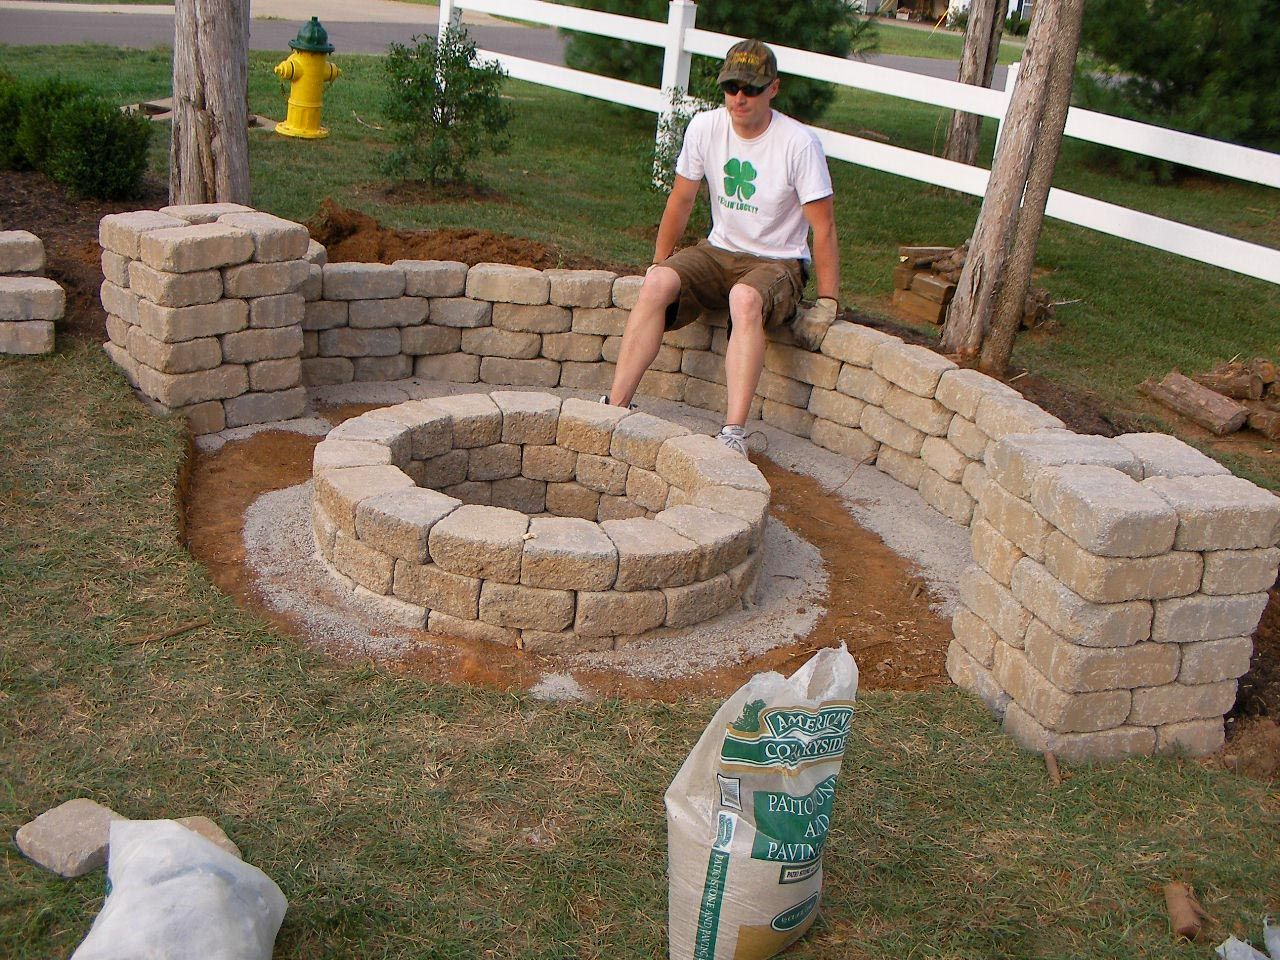 Easy Backyard Fire Pit Designs Yard Stuff Fire with regard to 14 Awesome Ways How to Improve Backyard Fire Pits Ideas